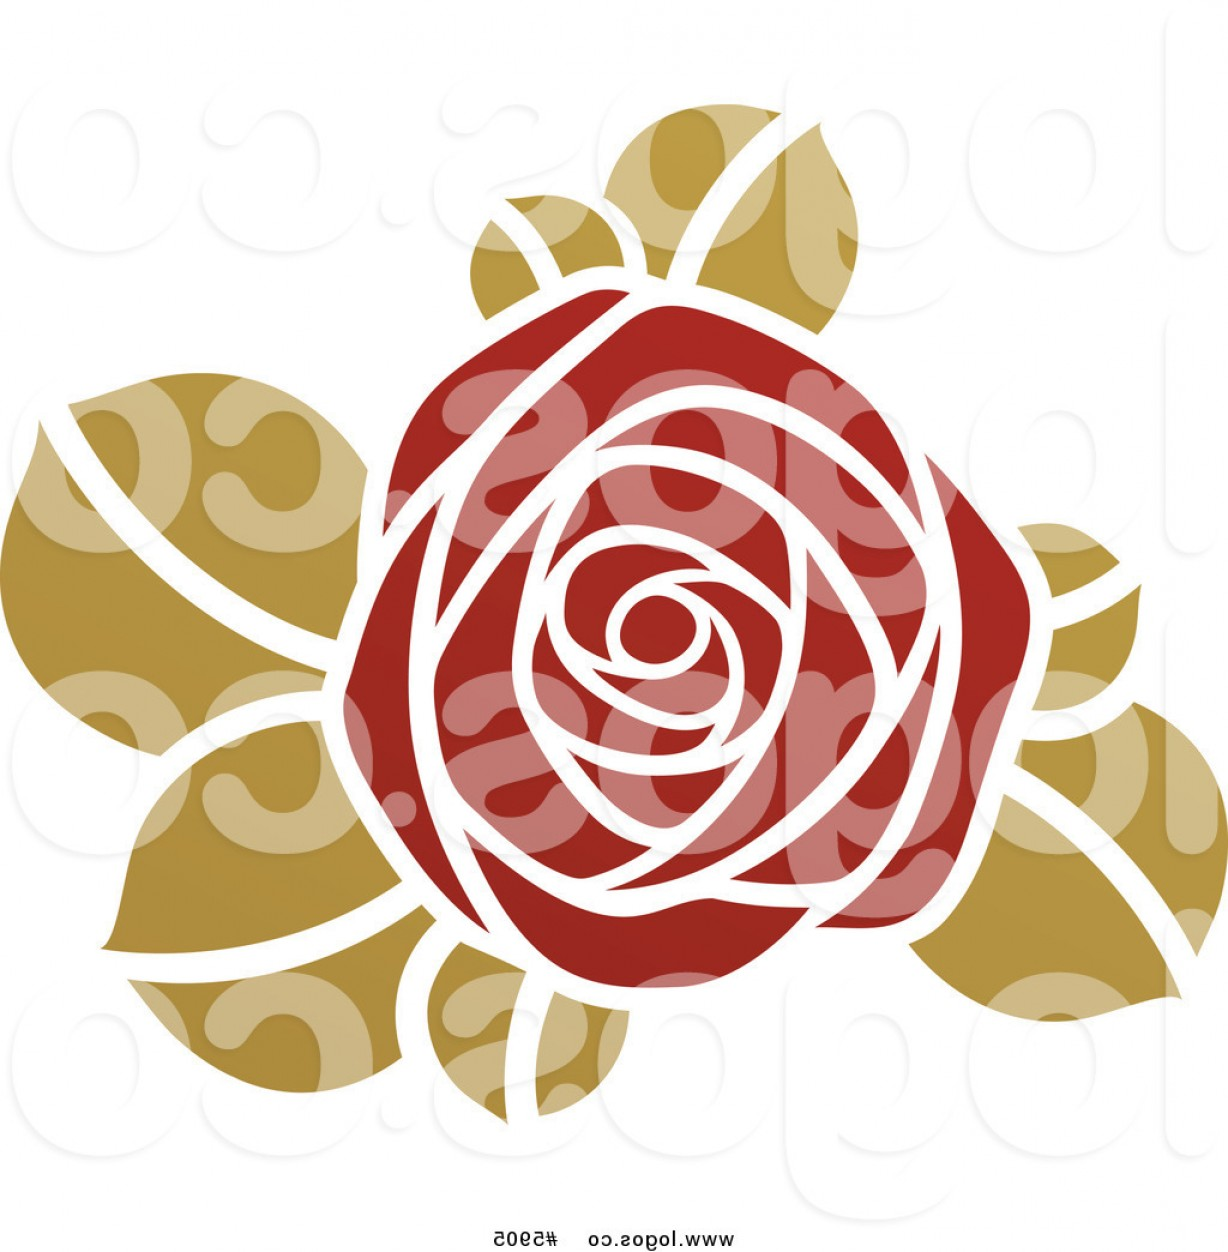 Roses Logo Vector: Royalty Free Vector Of A Logo Of A Red And Green Rose By Elena